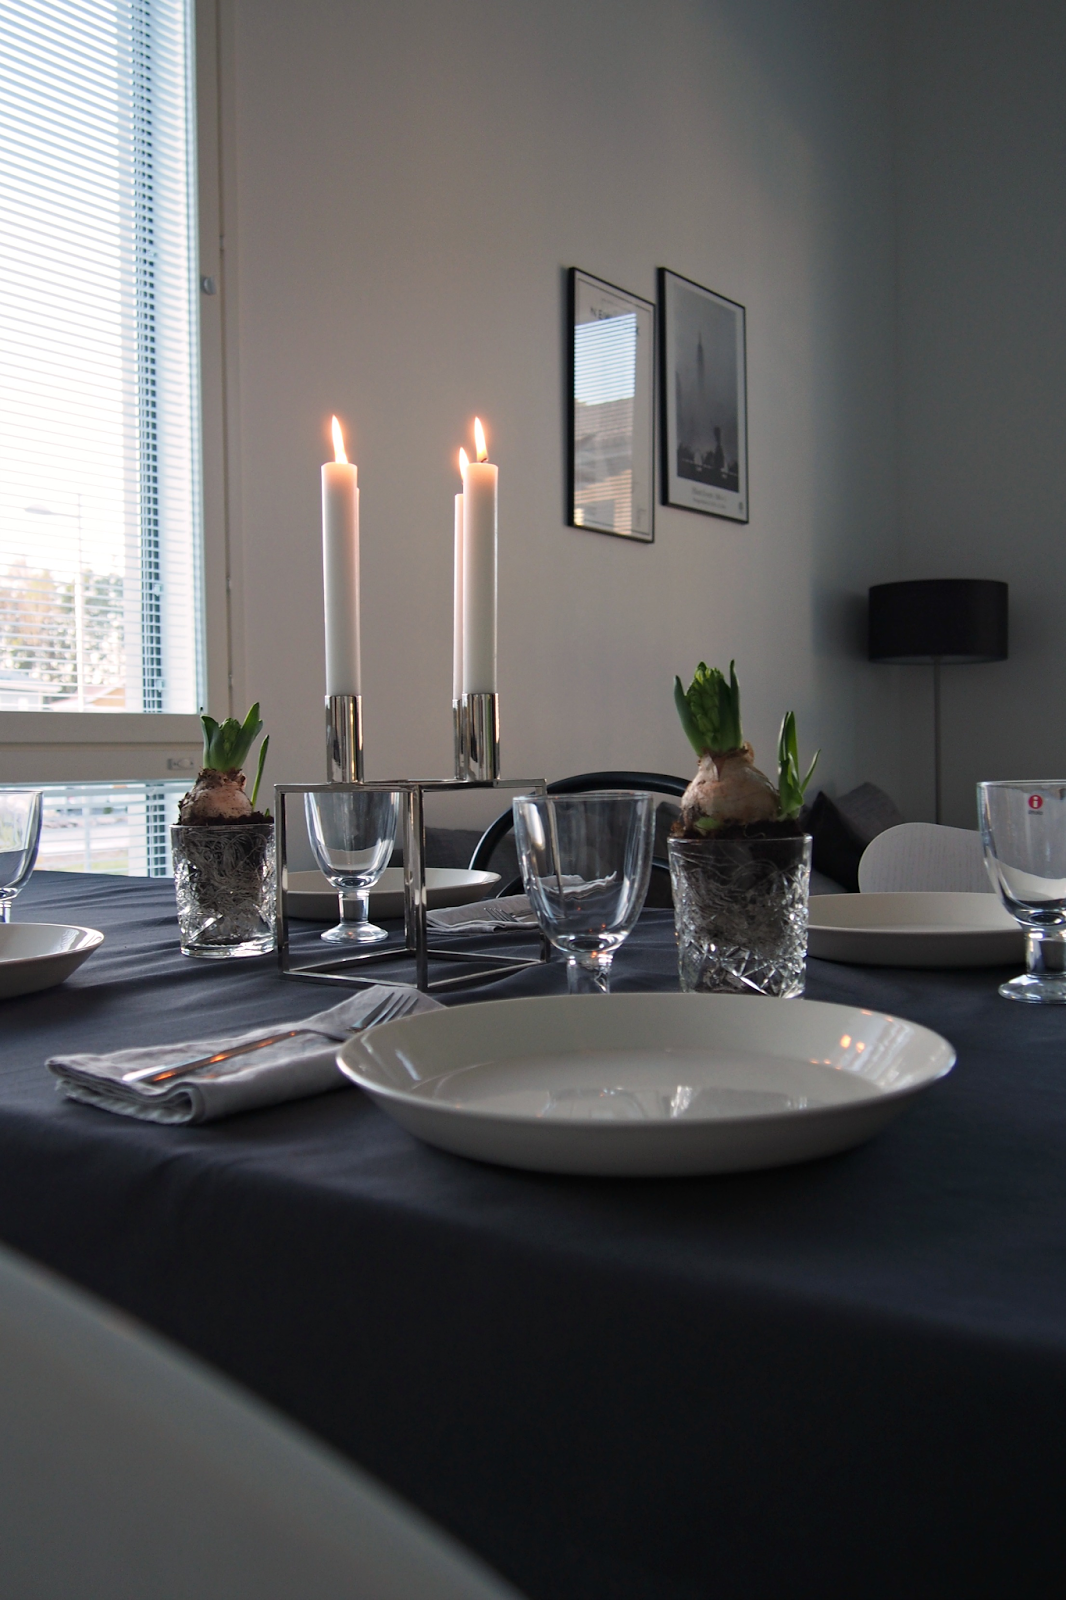 Hannas Home / table setting for Independence Day / Iittala tableware / Ikea cutlery / By Lassen Kubus